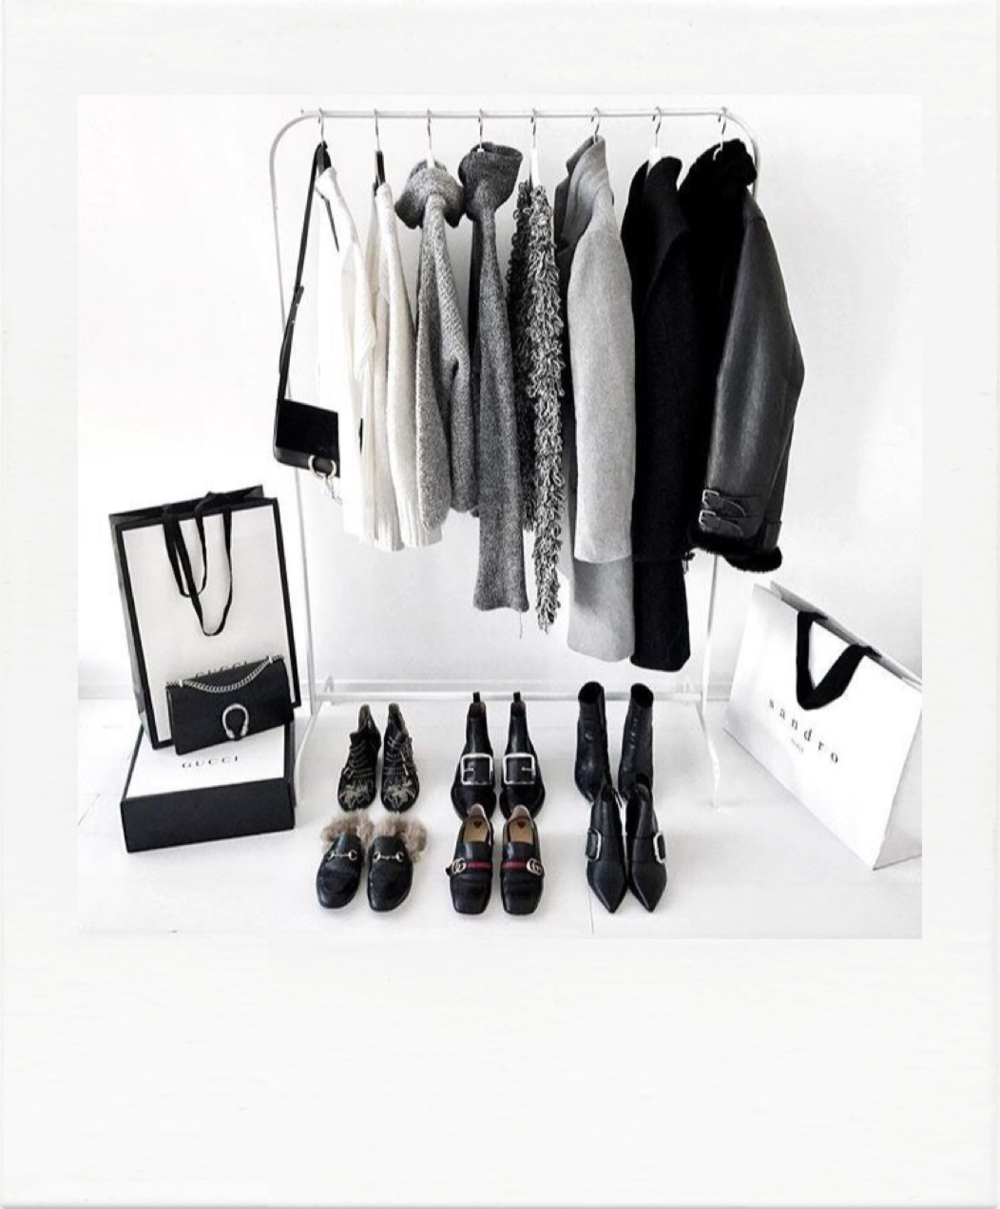 Timeless shopping selection, a rail of clothes will be presented of your new wardrobe